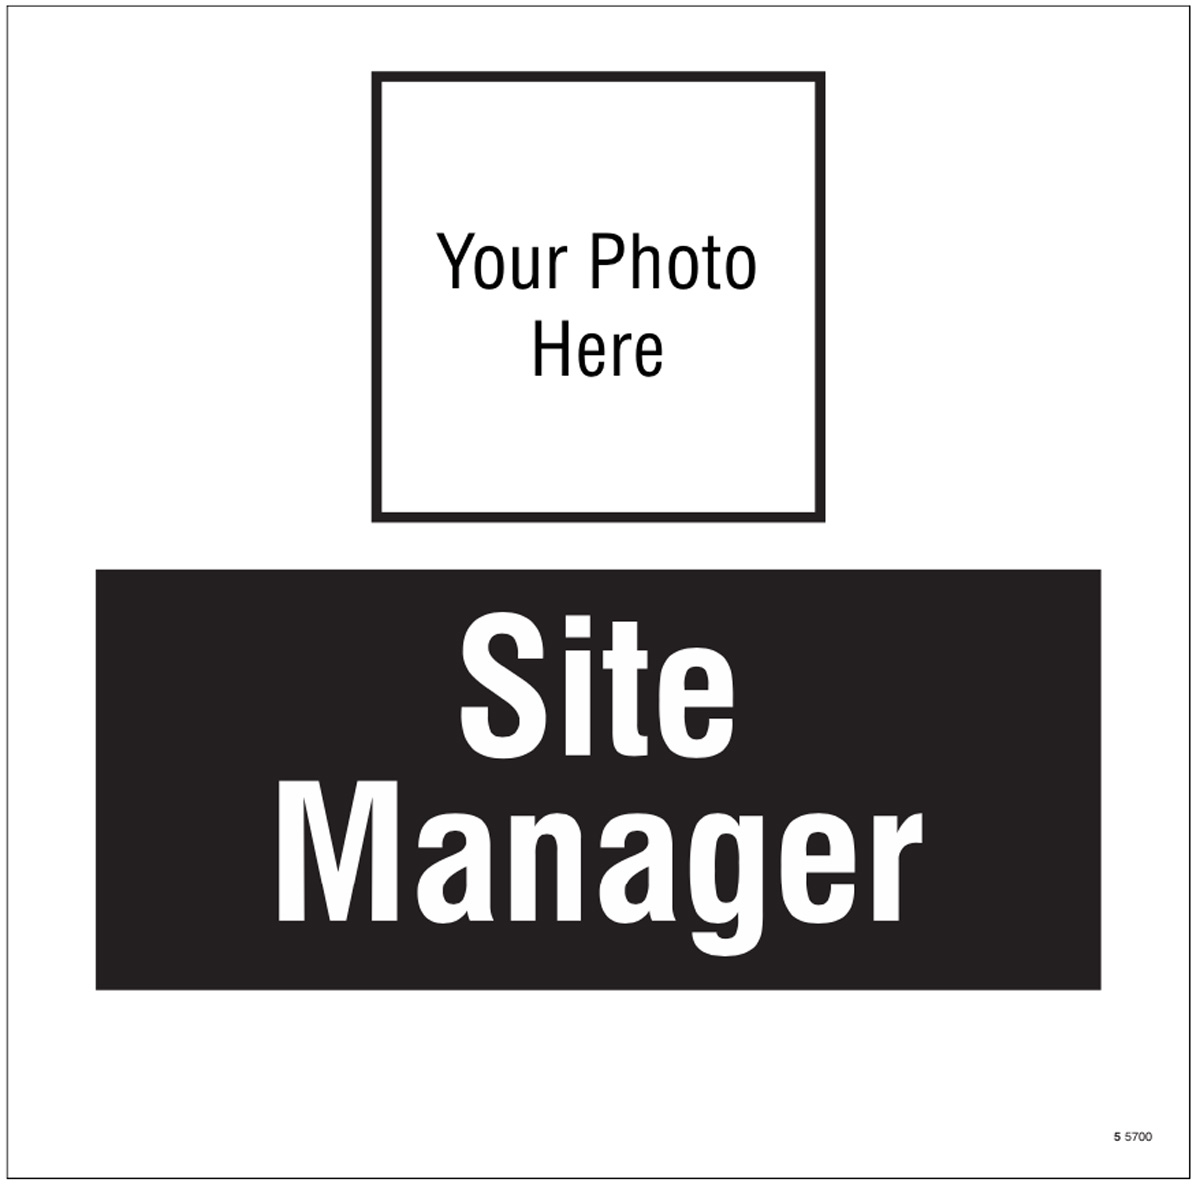 Site manager, your photo here site saver sign 400x400mm